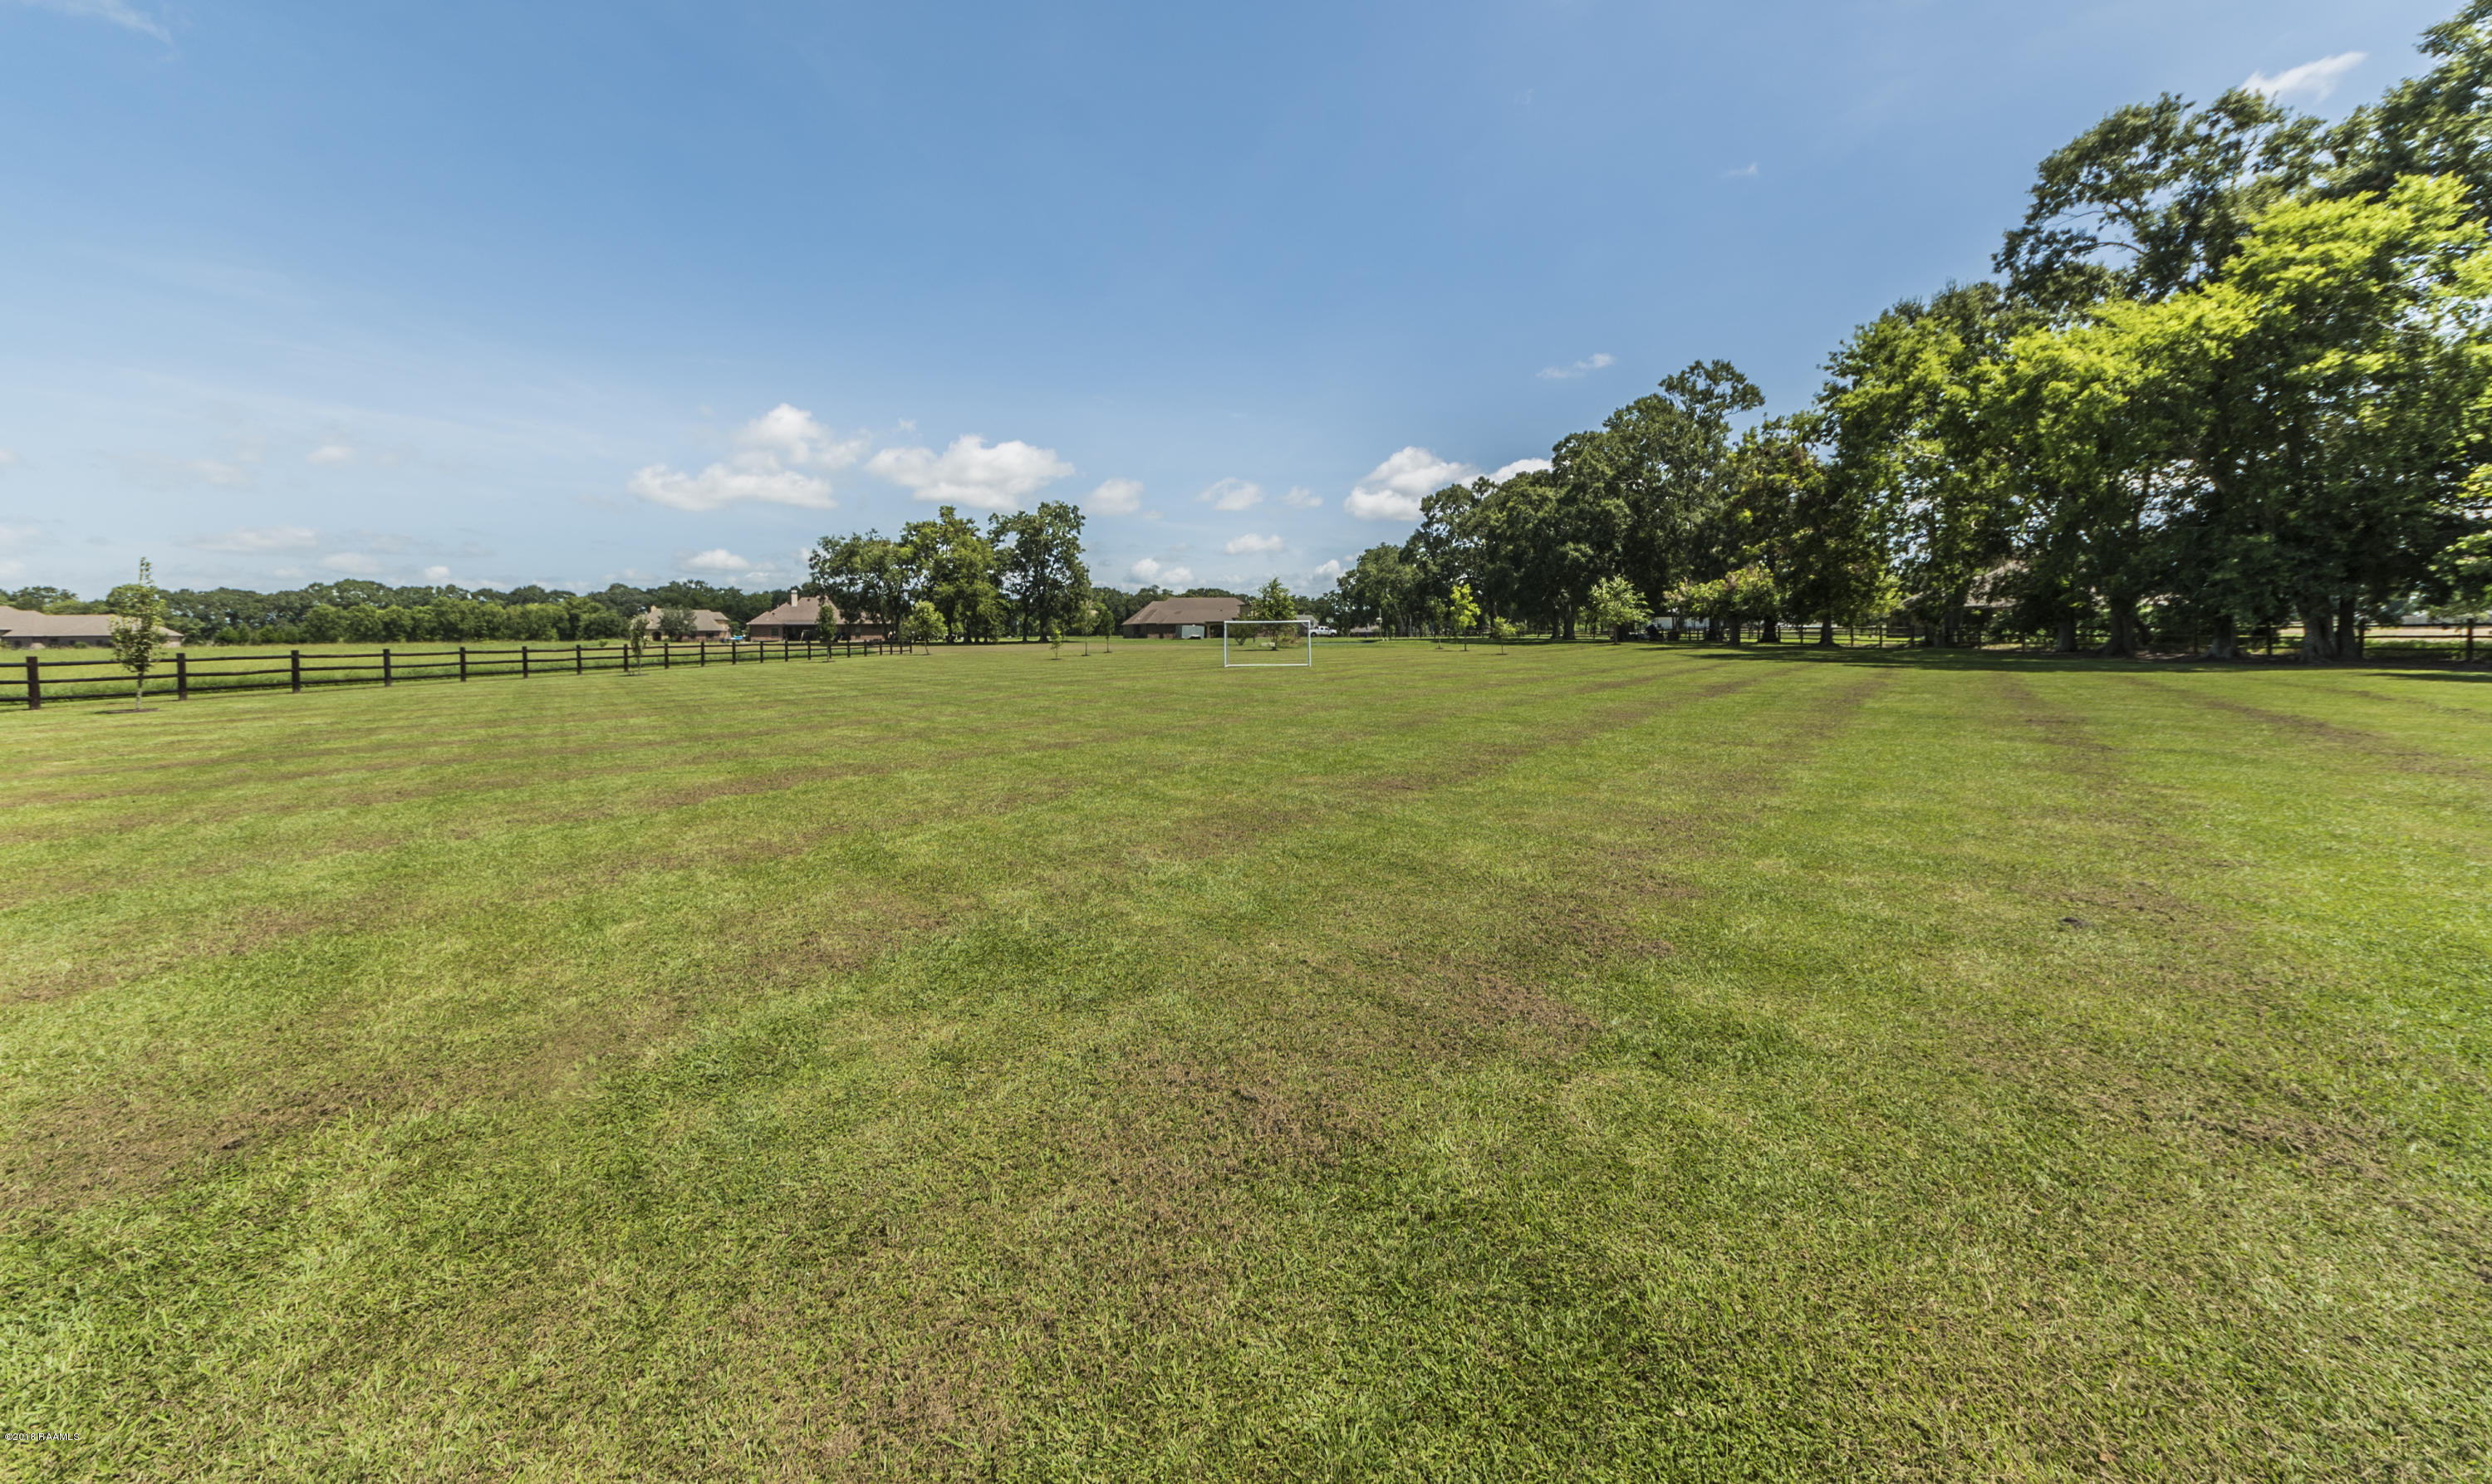 104 Saddle Drive, Opelousas, LA 70570 Photo #38